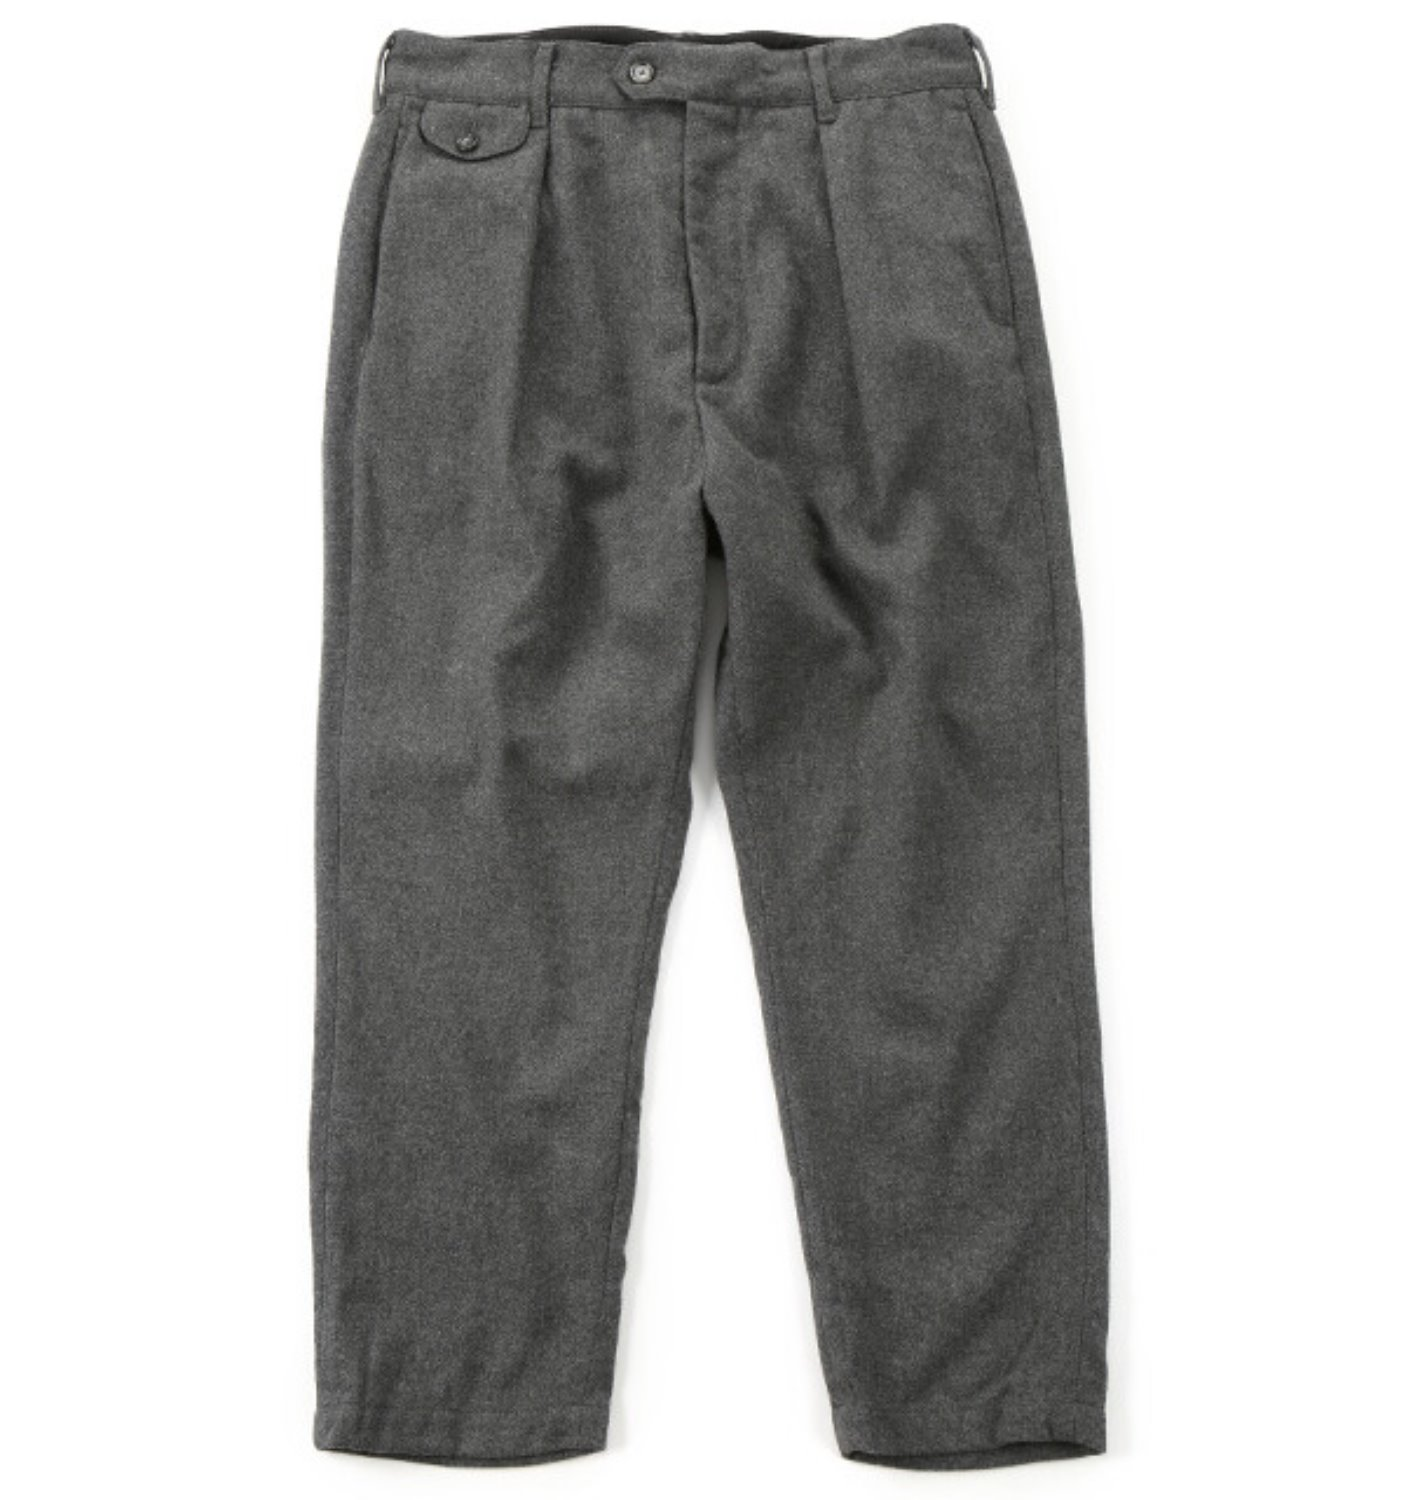 RLJ PANT GREY WOOL POLY FLANNEL